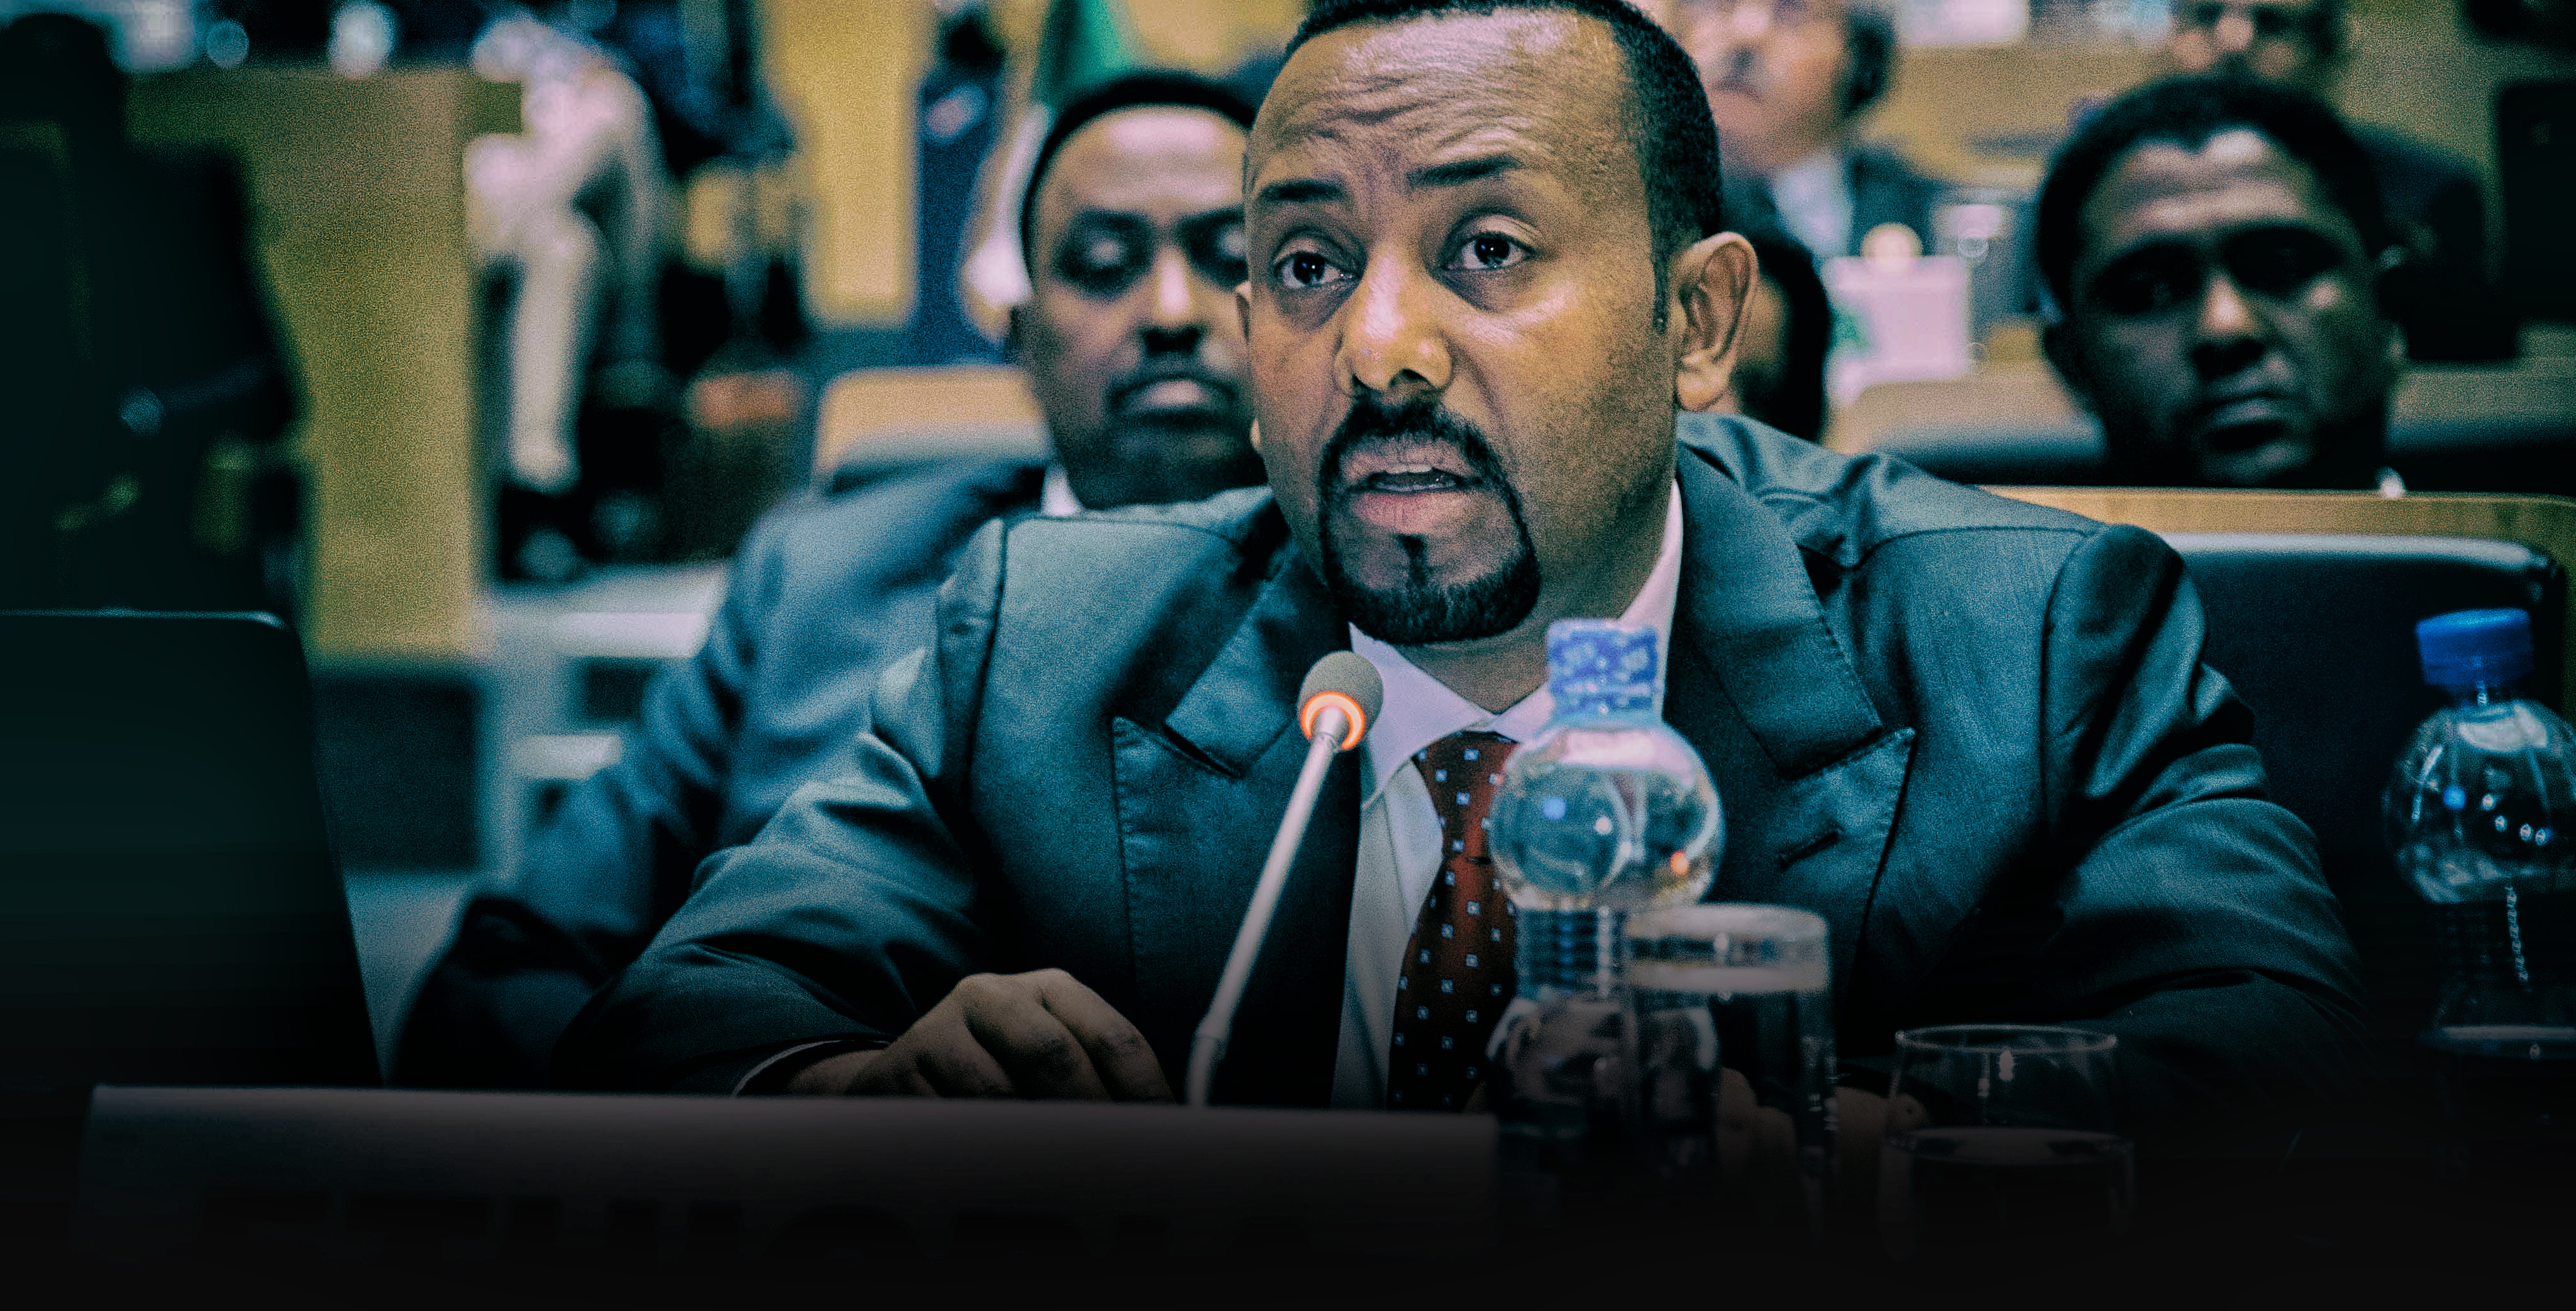 Nobel gives Ethiopia's Abiy Ahmed momentum to consolidate sustainable peace